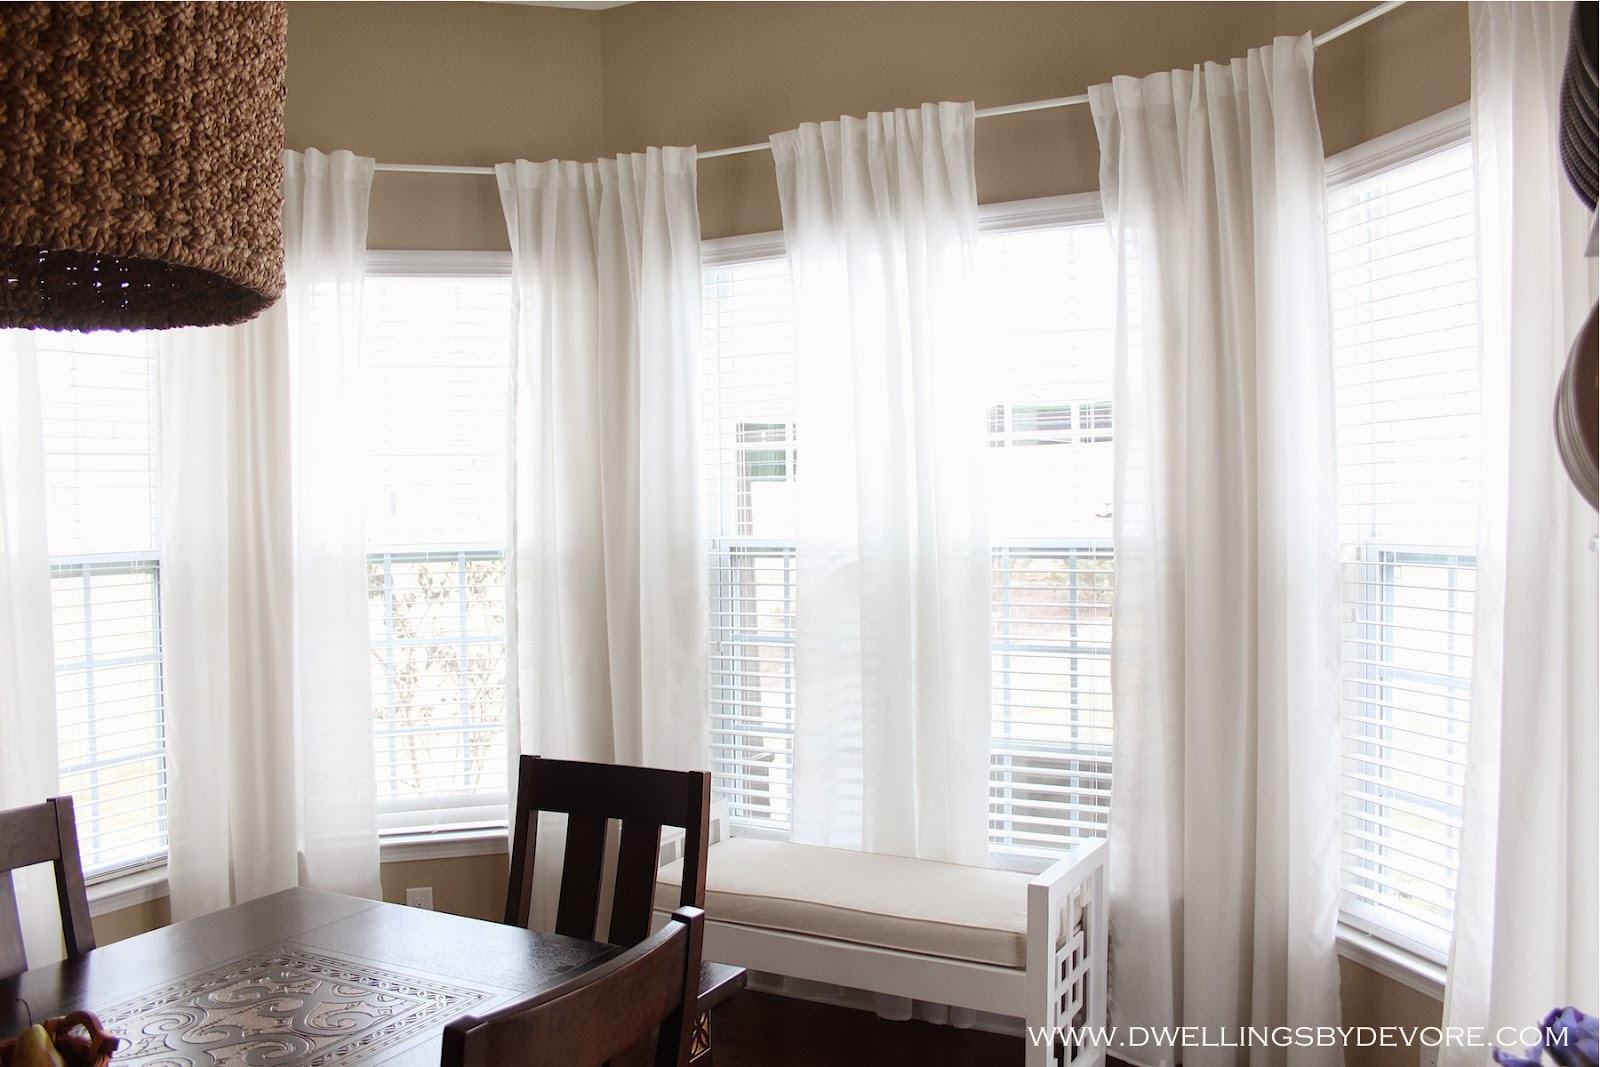 Dwellings By DeVore: Bay Window Curtains